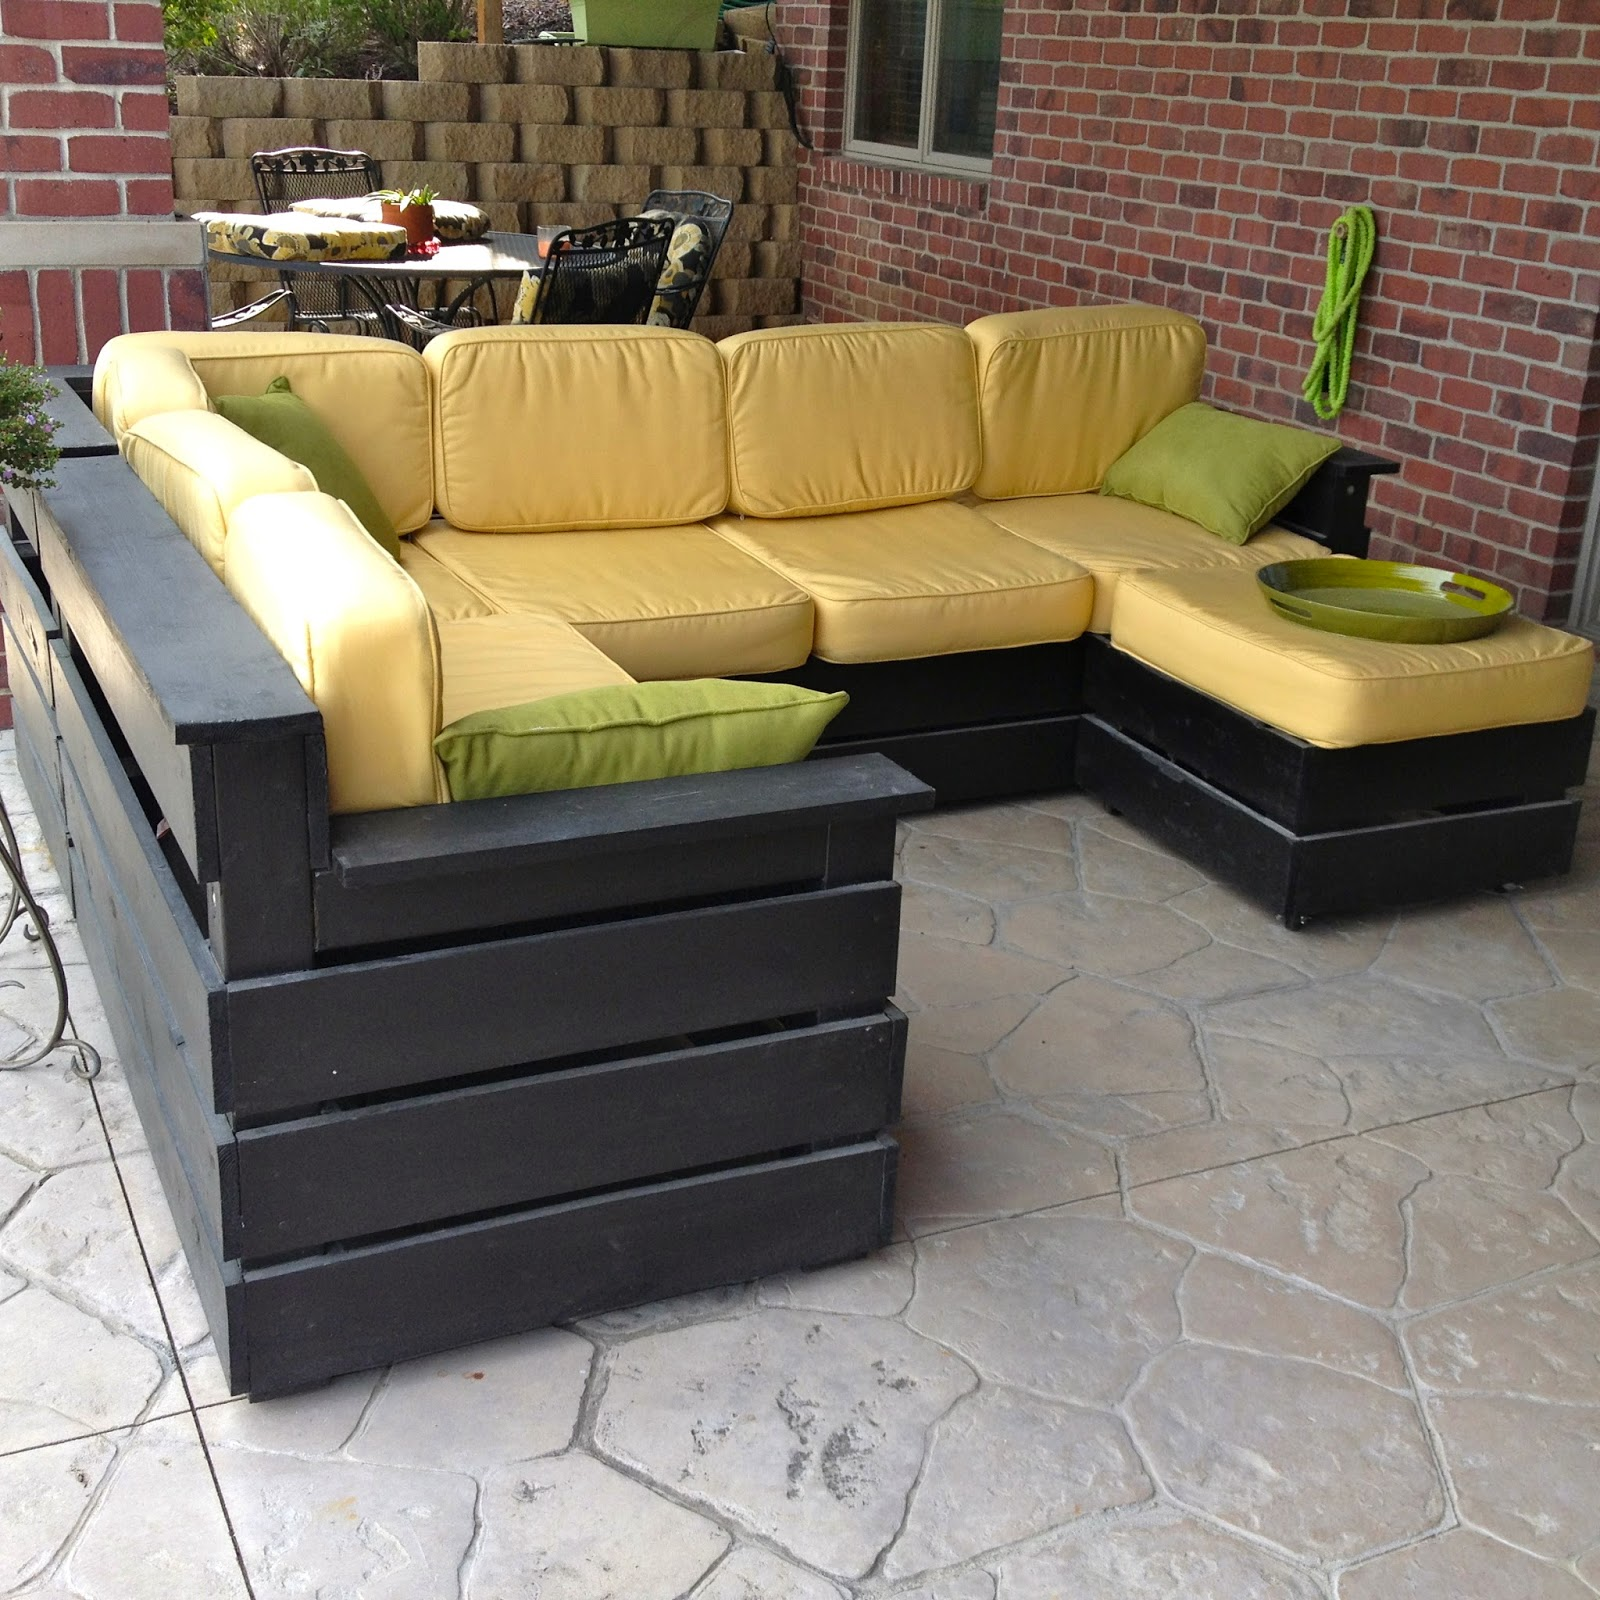 DIY Why Spend More DIY Outdoor Sectional